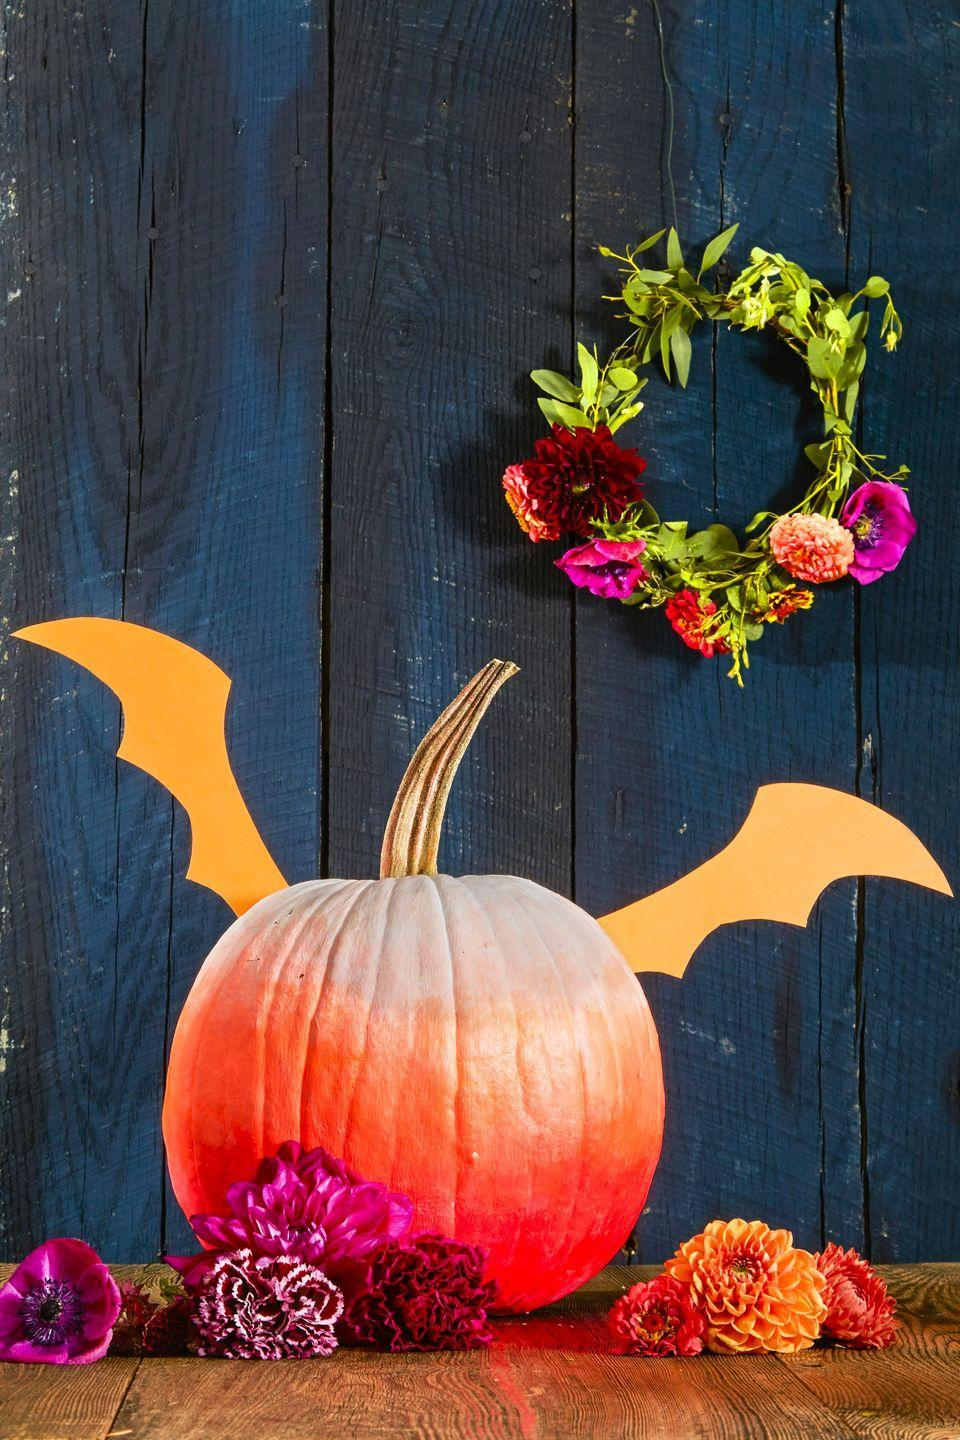 <p>Prop paper wings with chopsticks or skewers to help your pumpkin take flight (or at least look like it's about to). To get the multicolored paint job, strategically blend white, orange and magenta paint, adding more saturation from top to bottom. </p>